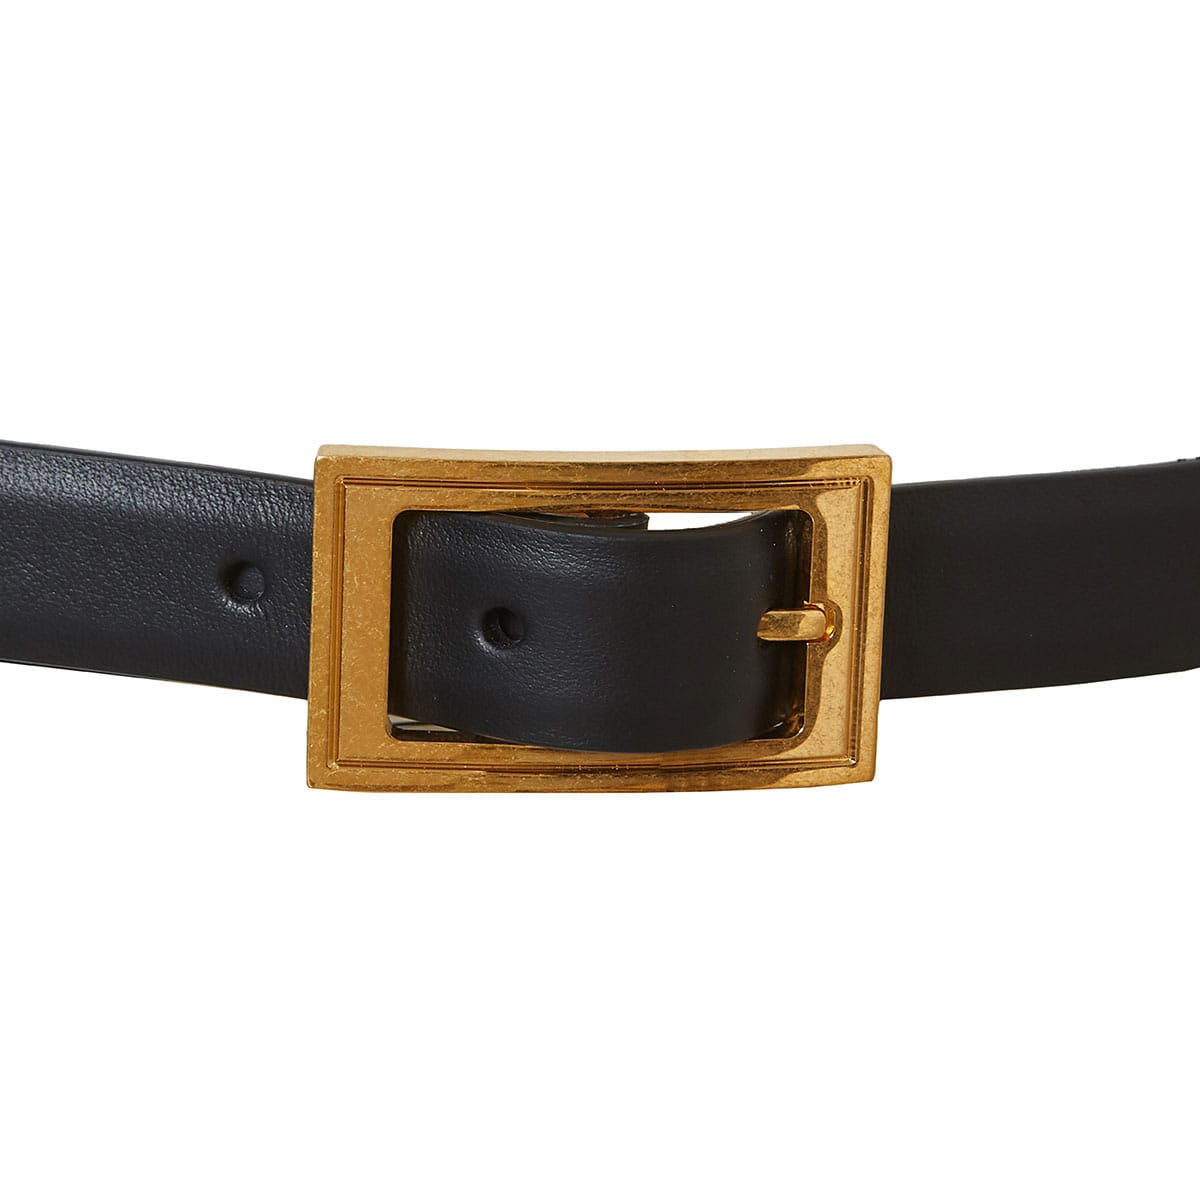 Medusa chain and leather belt